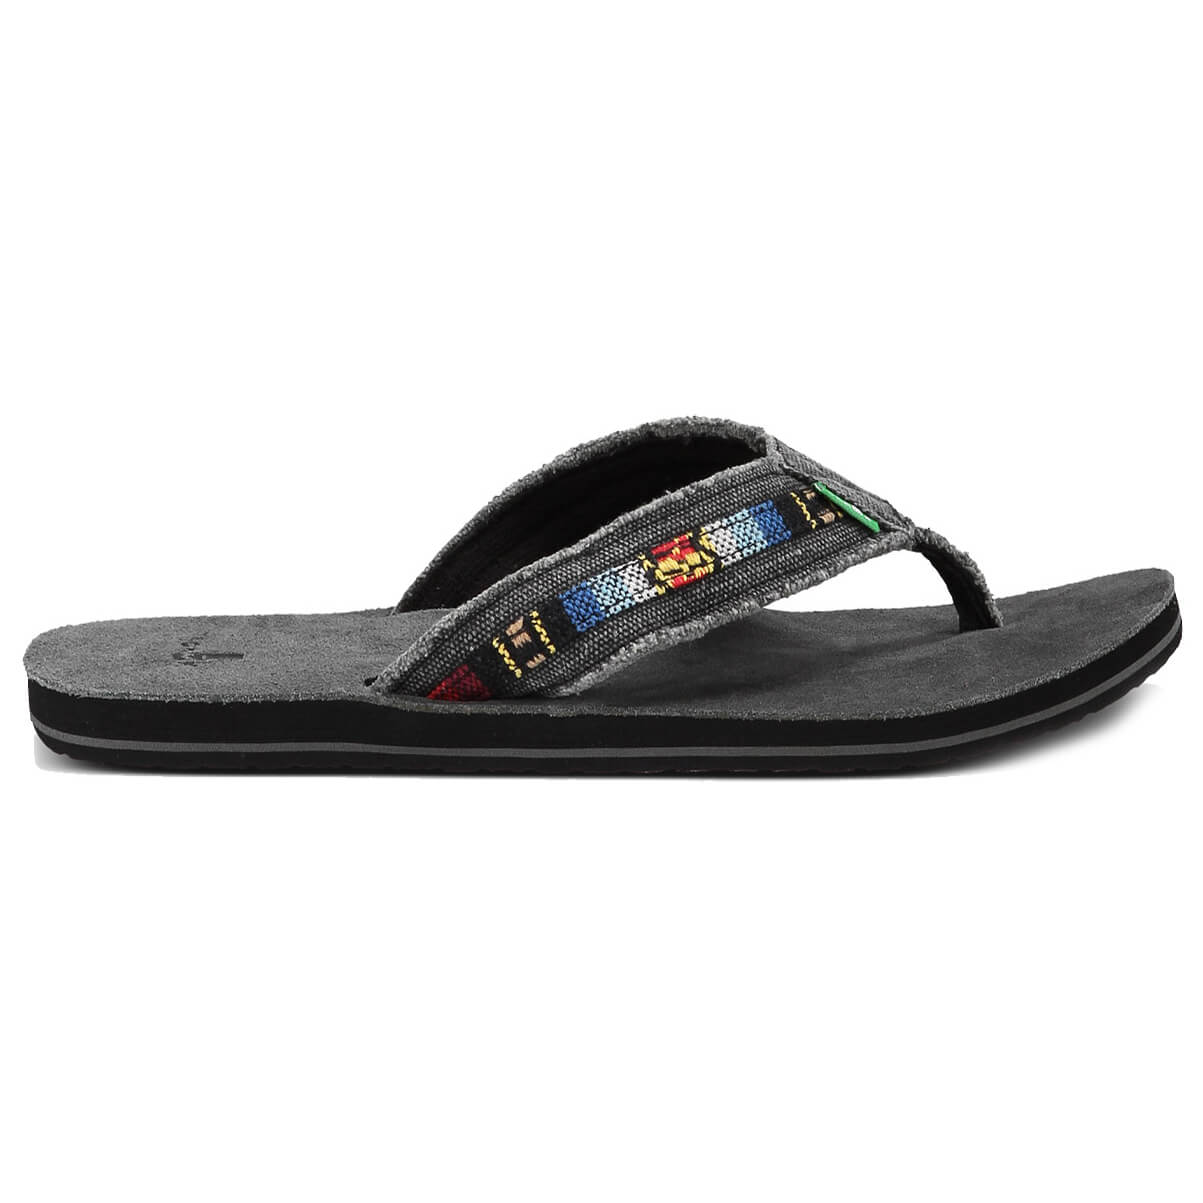 Buy Sanuk Men's Donny SWS Loafer and other Loafers & Slip-Ons at choreadz.ml Our wide selection is eligible for free shipping and free returns.